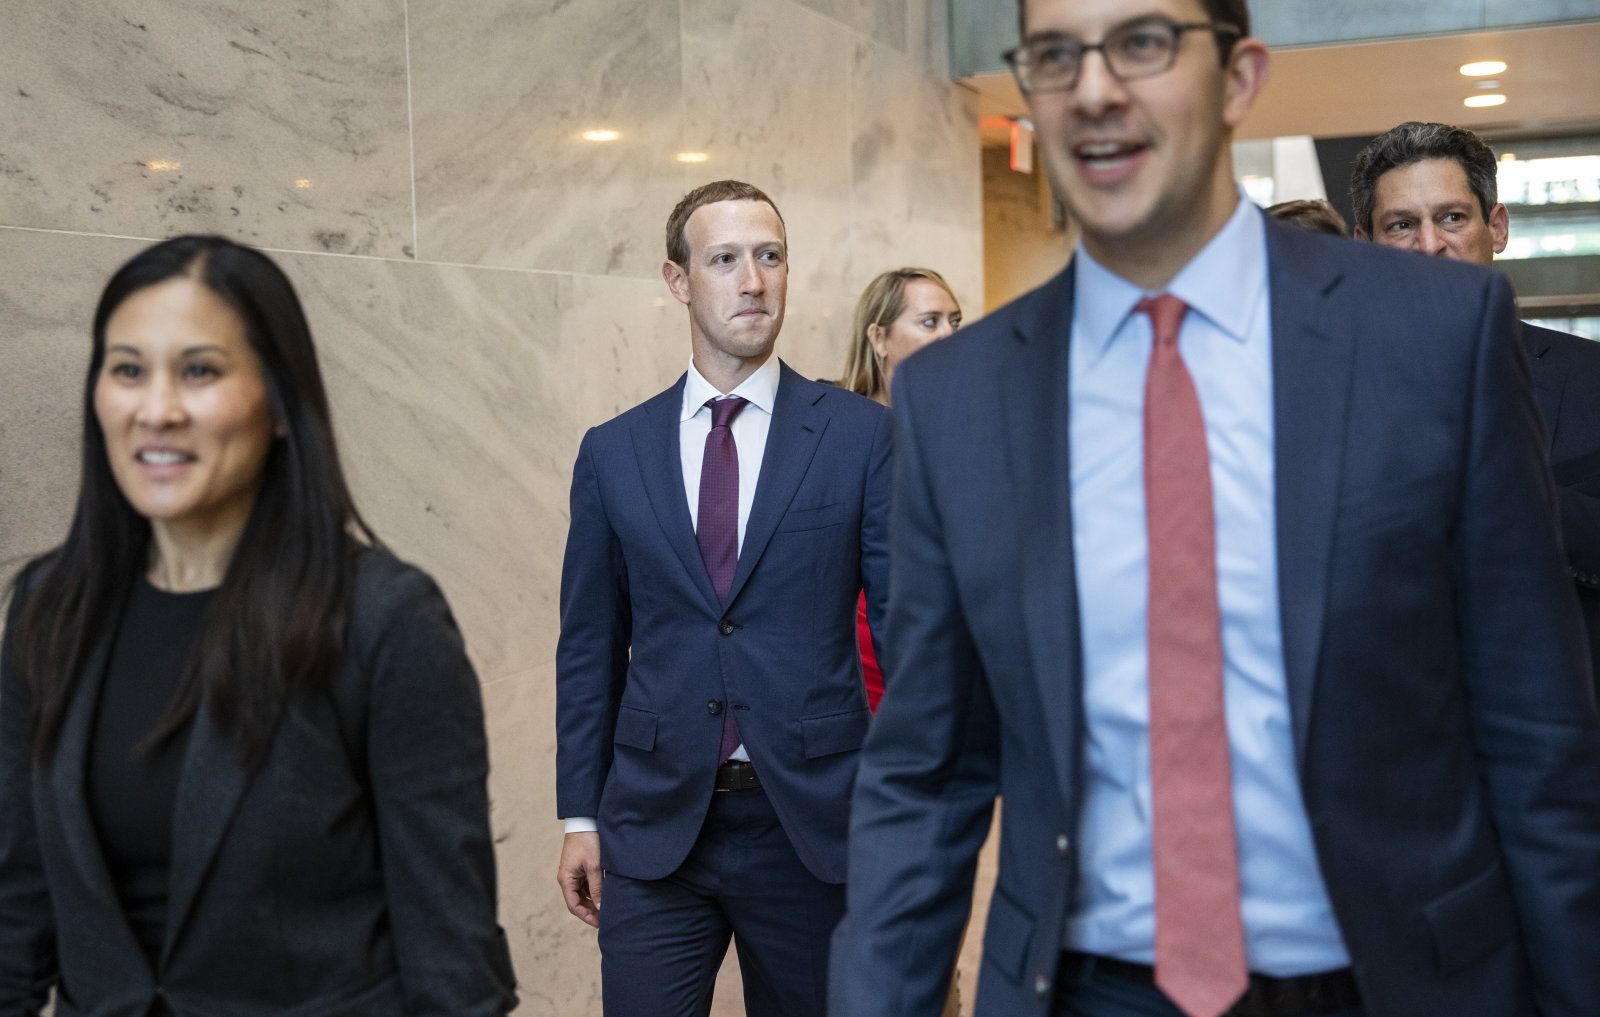 Mark Zuckerberg visited Donald Trump at the White House | DeviceDaily.com